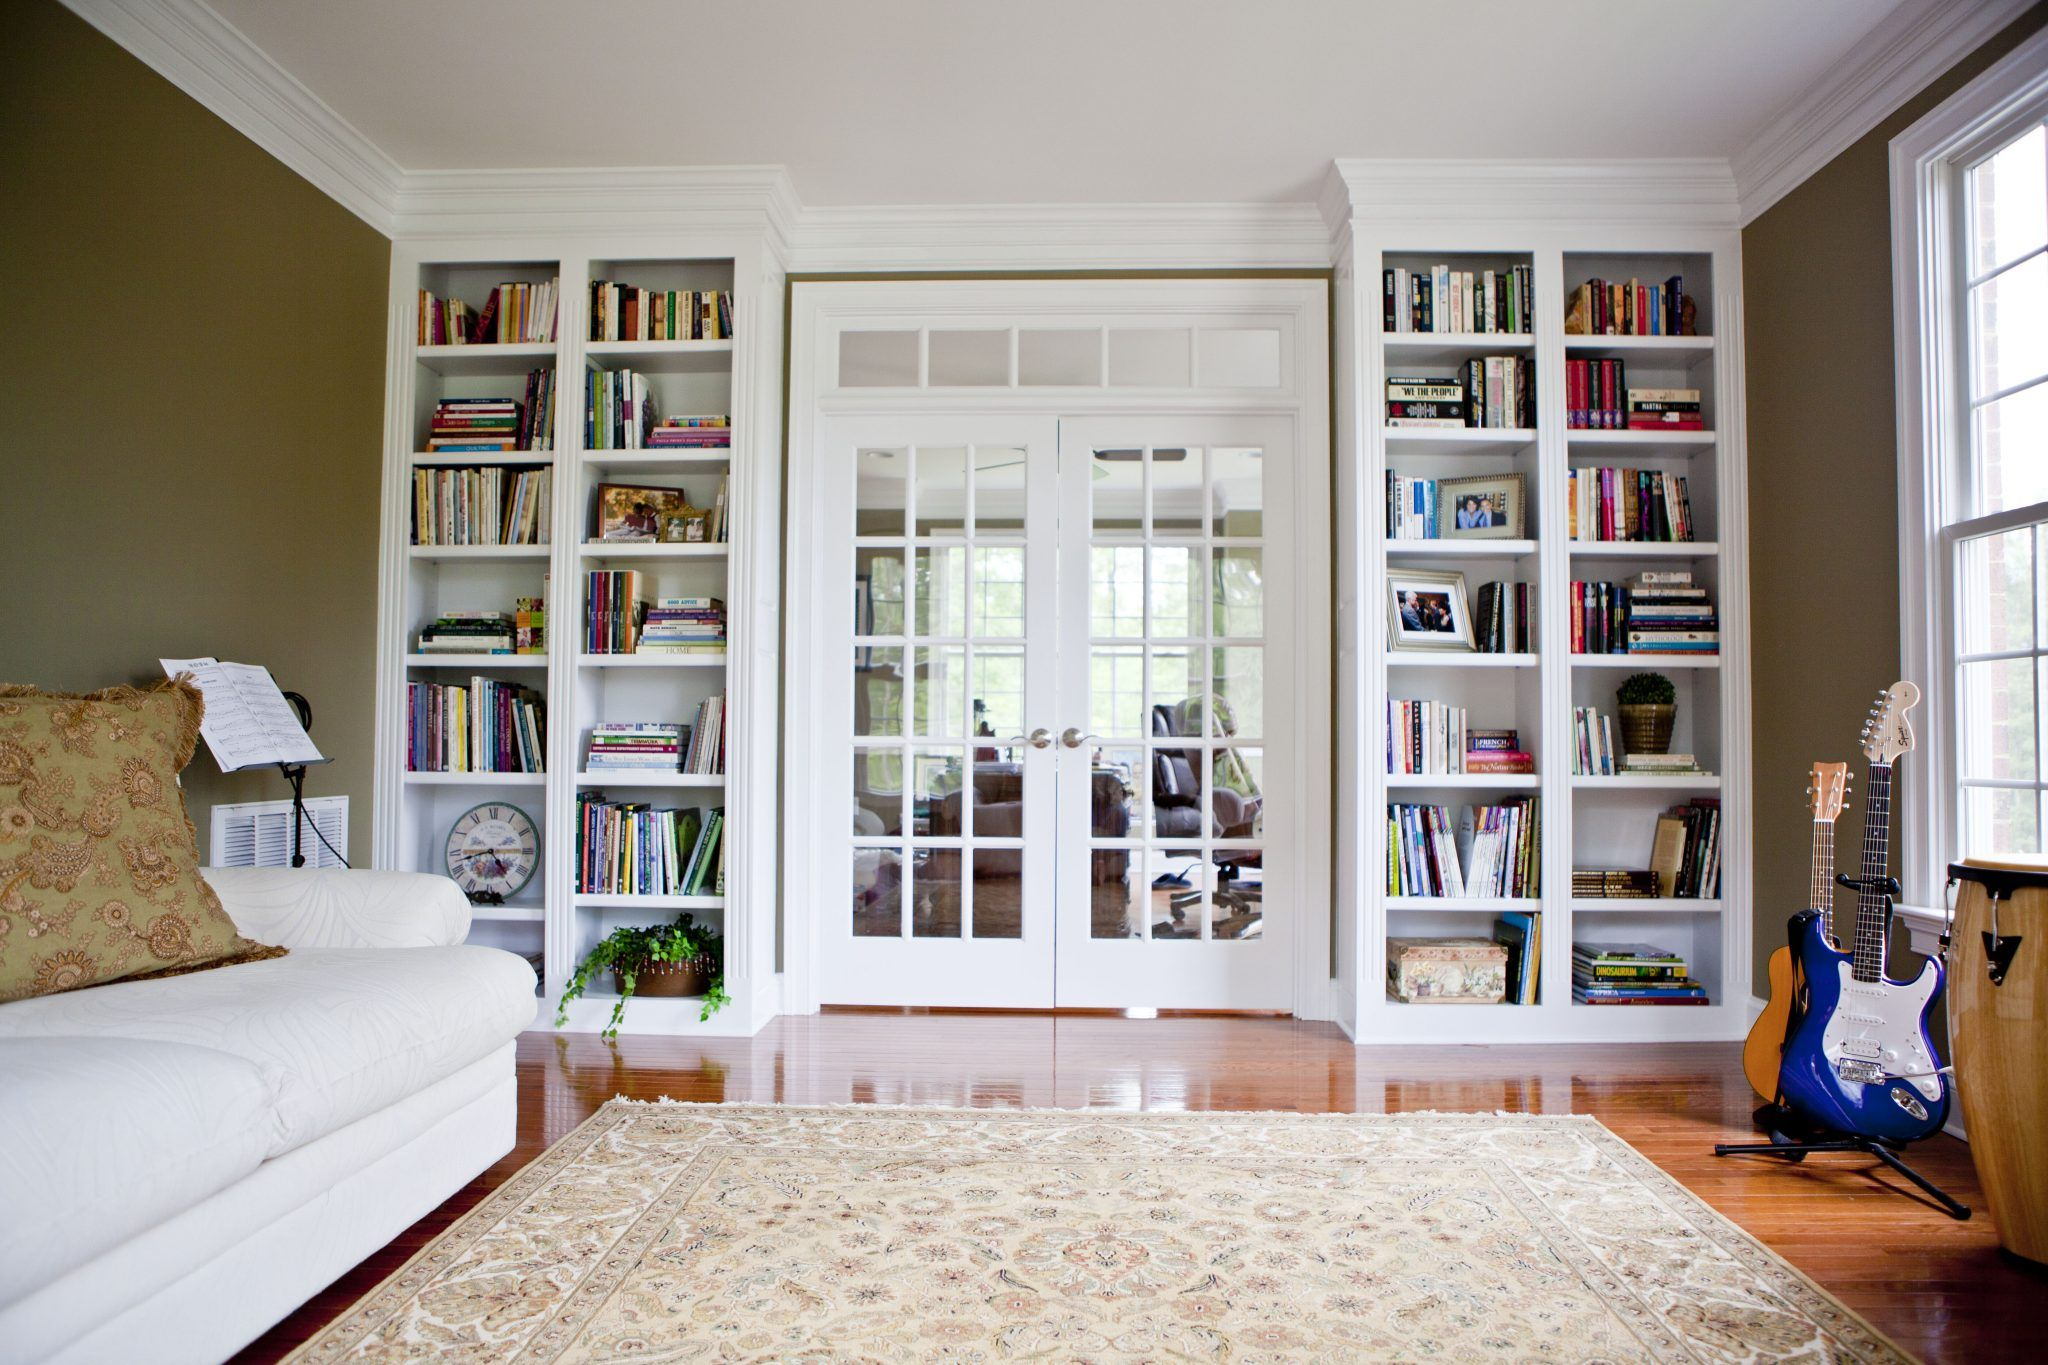 Blog at home with books close book cases pinterest entry hallway